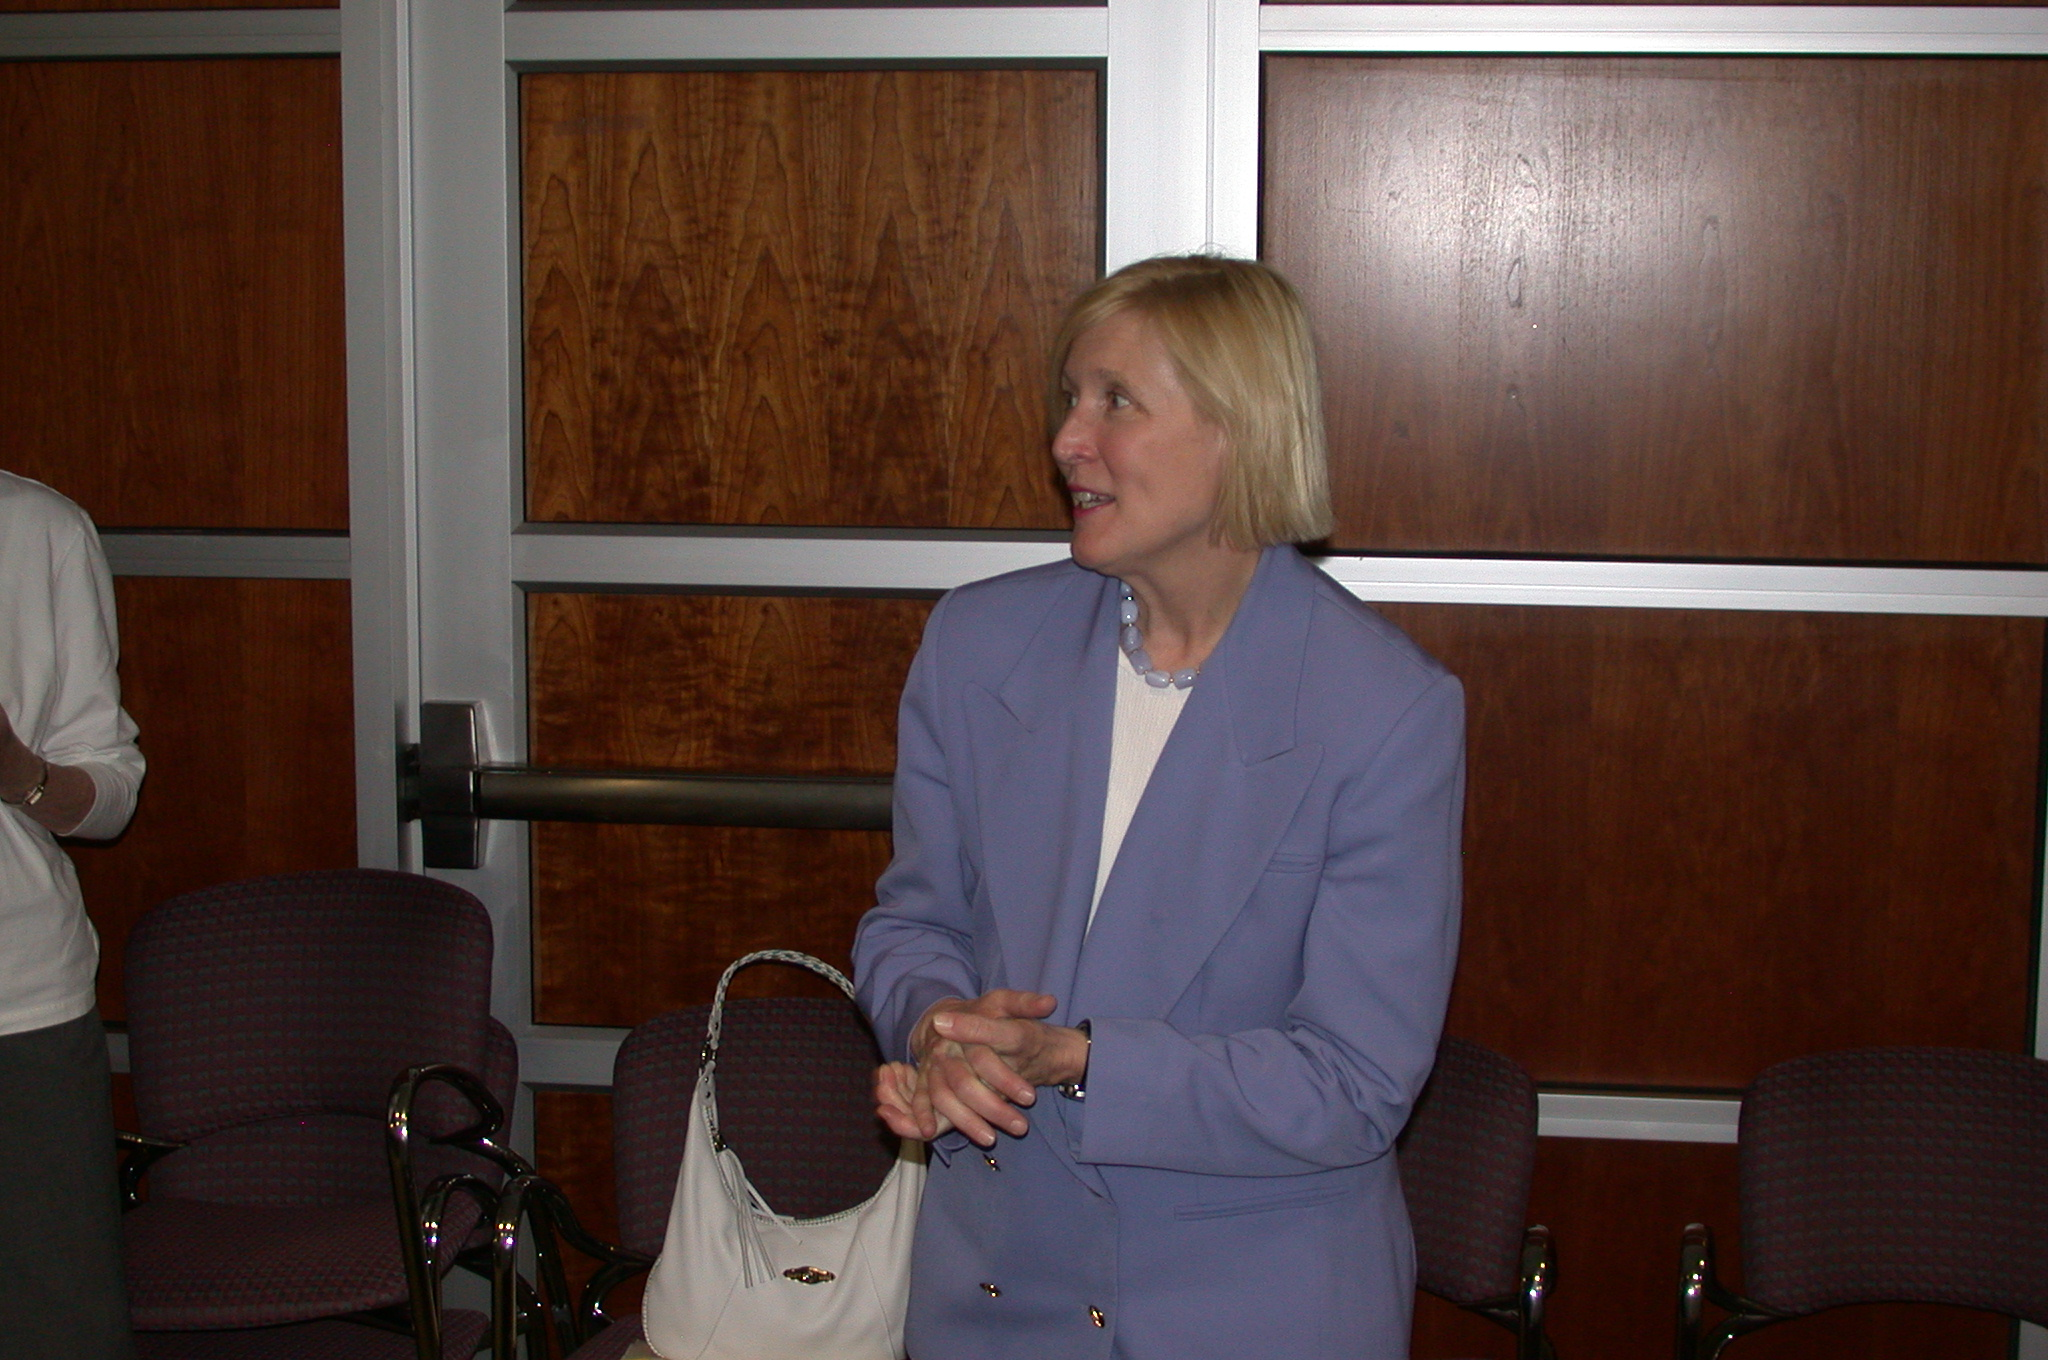 DSCN0052.jpg - ...held a reception, where President Runte said a few words...